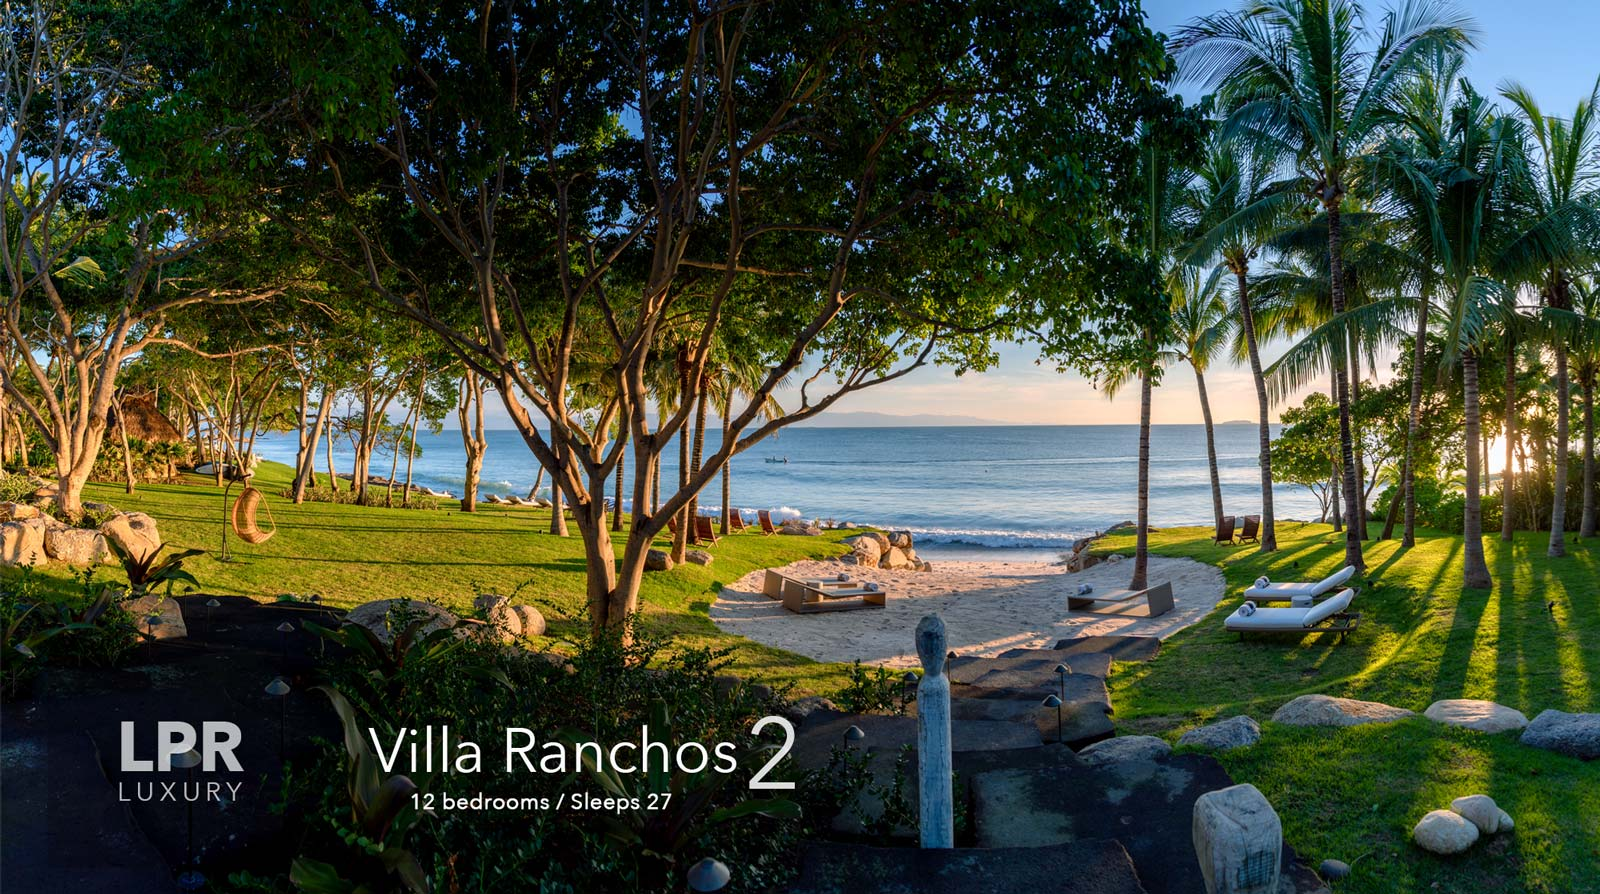 Villa Ranchos 2 - Luxury Punta Mita Real Estate and Vacation Rentals Villas